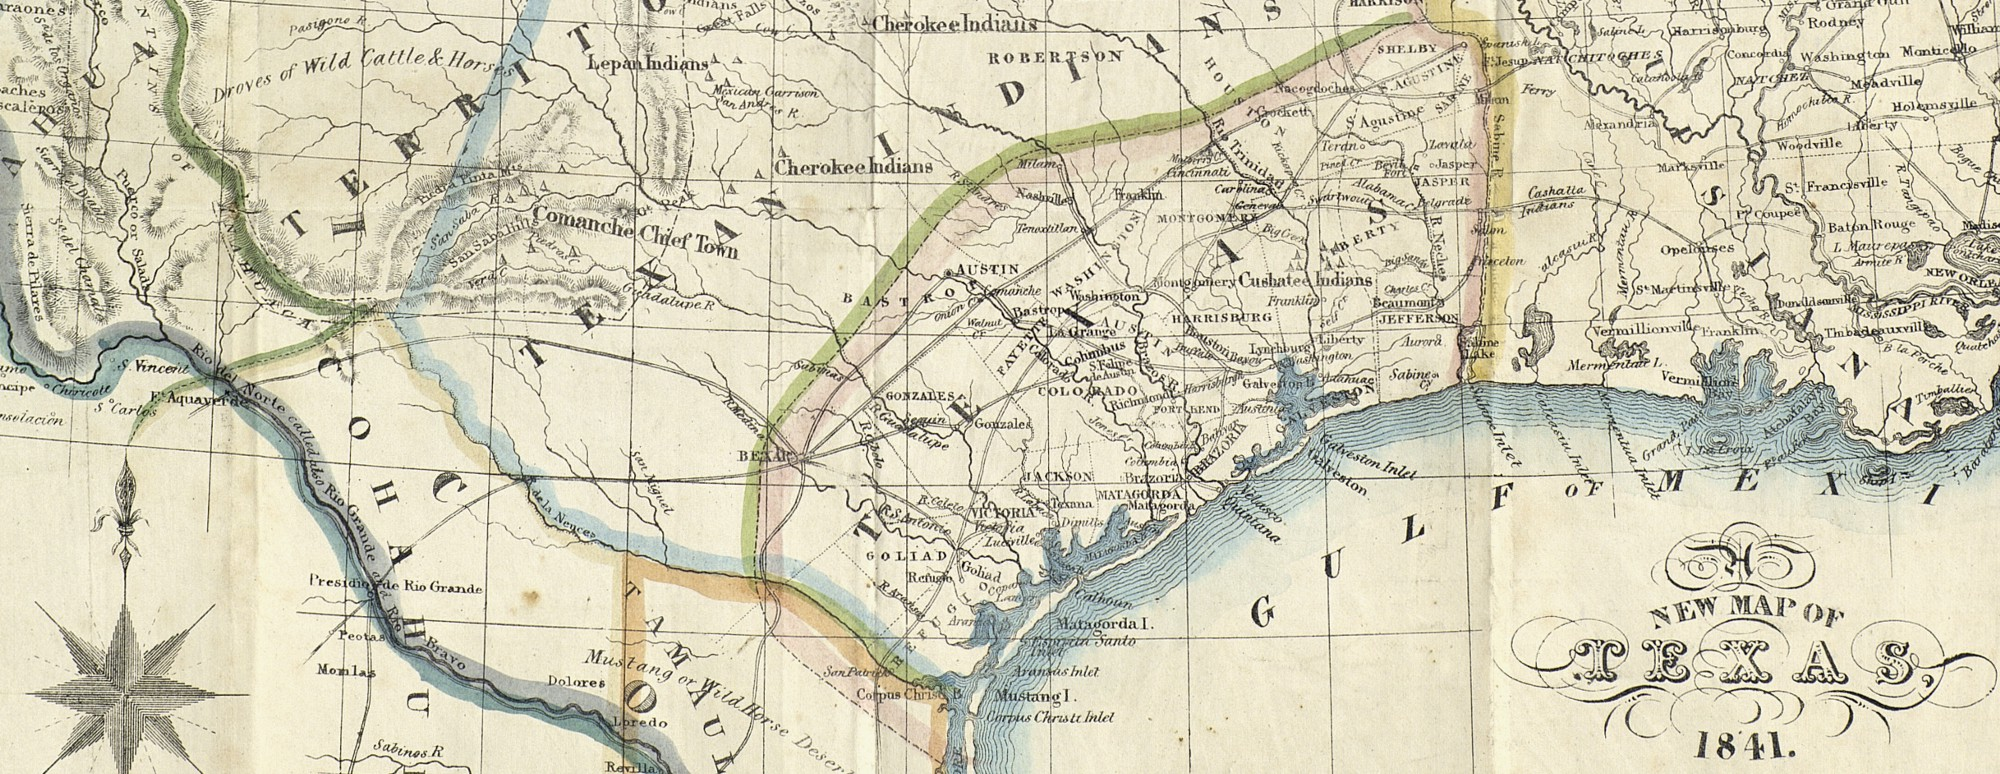 A new map of texas 1841 save texas history medium nicholas doran maillard a new map of texas new york day haghe 1841 map 93862 frank and carol holcomb map collection archives and records program gumiabroncs